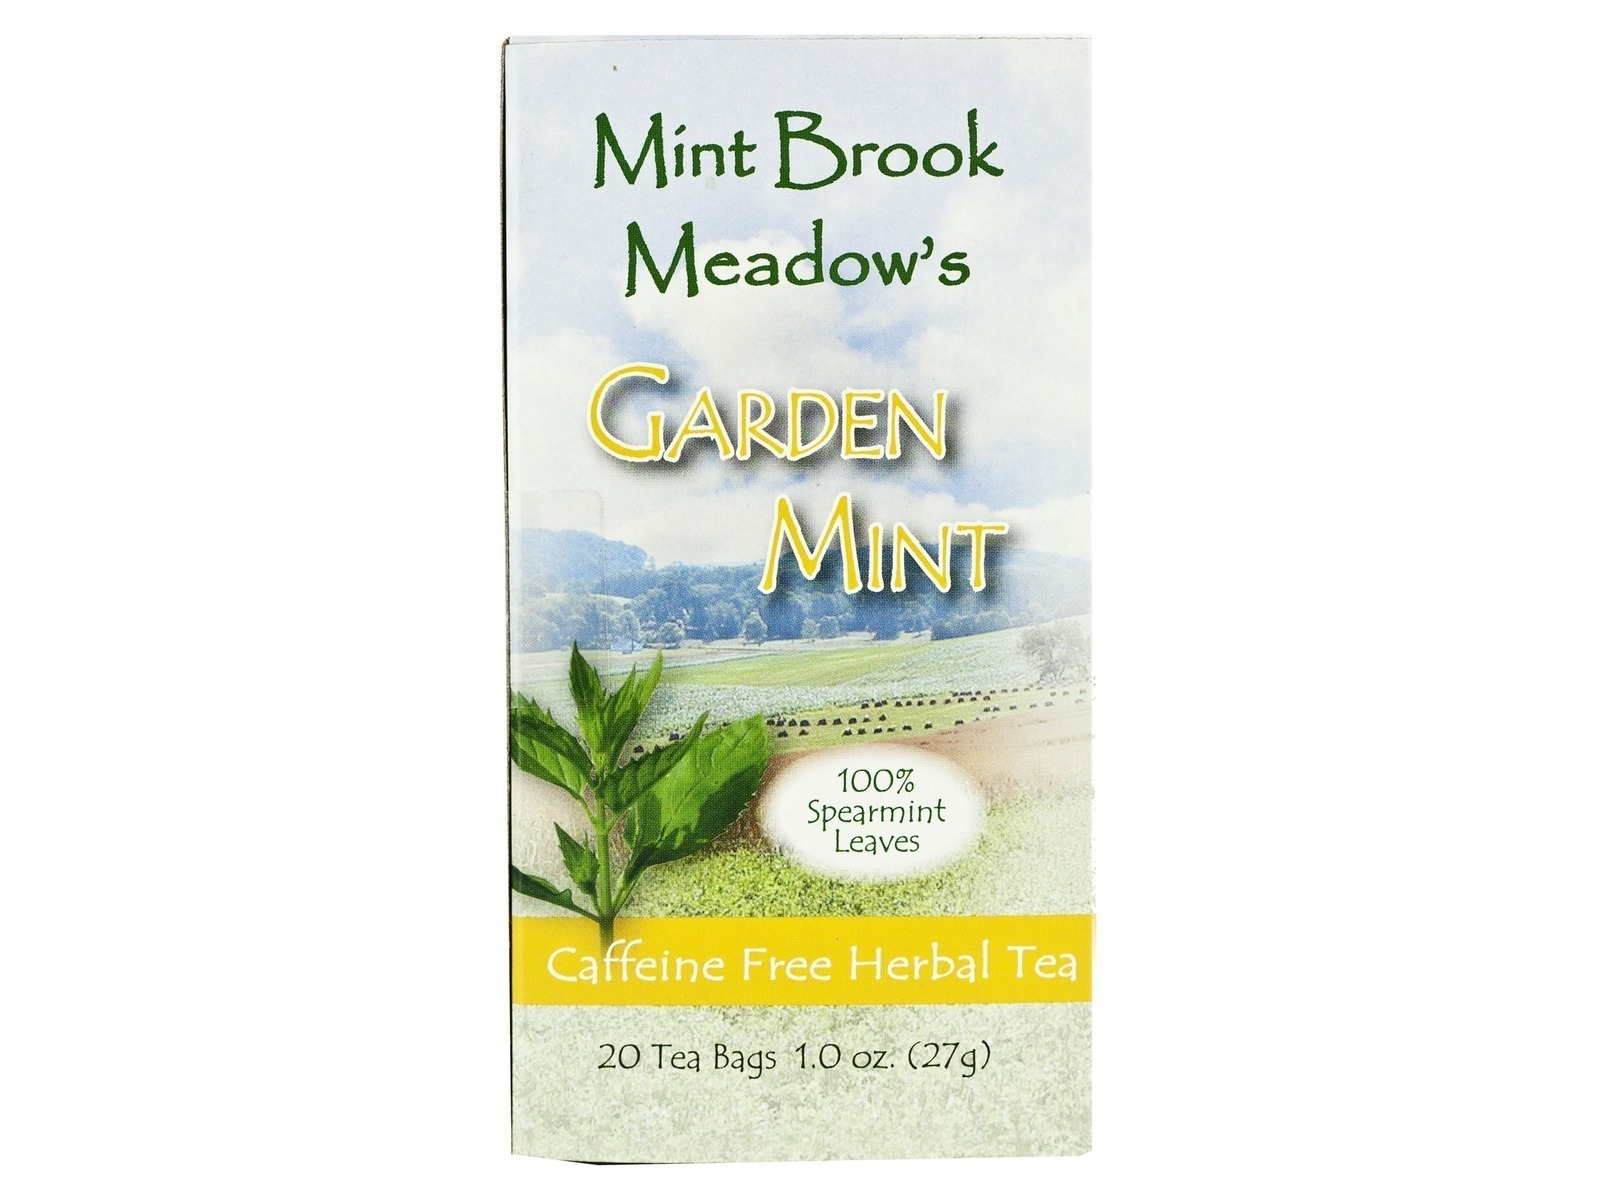 Mint Brooks Meadows Garden Mint Tea 20ct (6 Cartons) - CAFFEINE